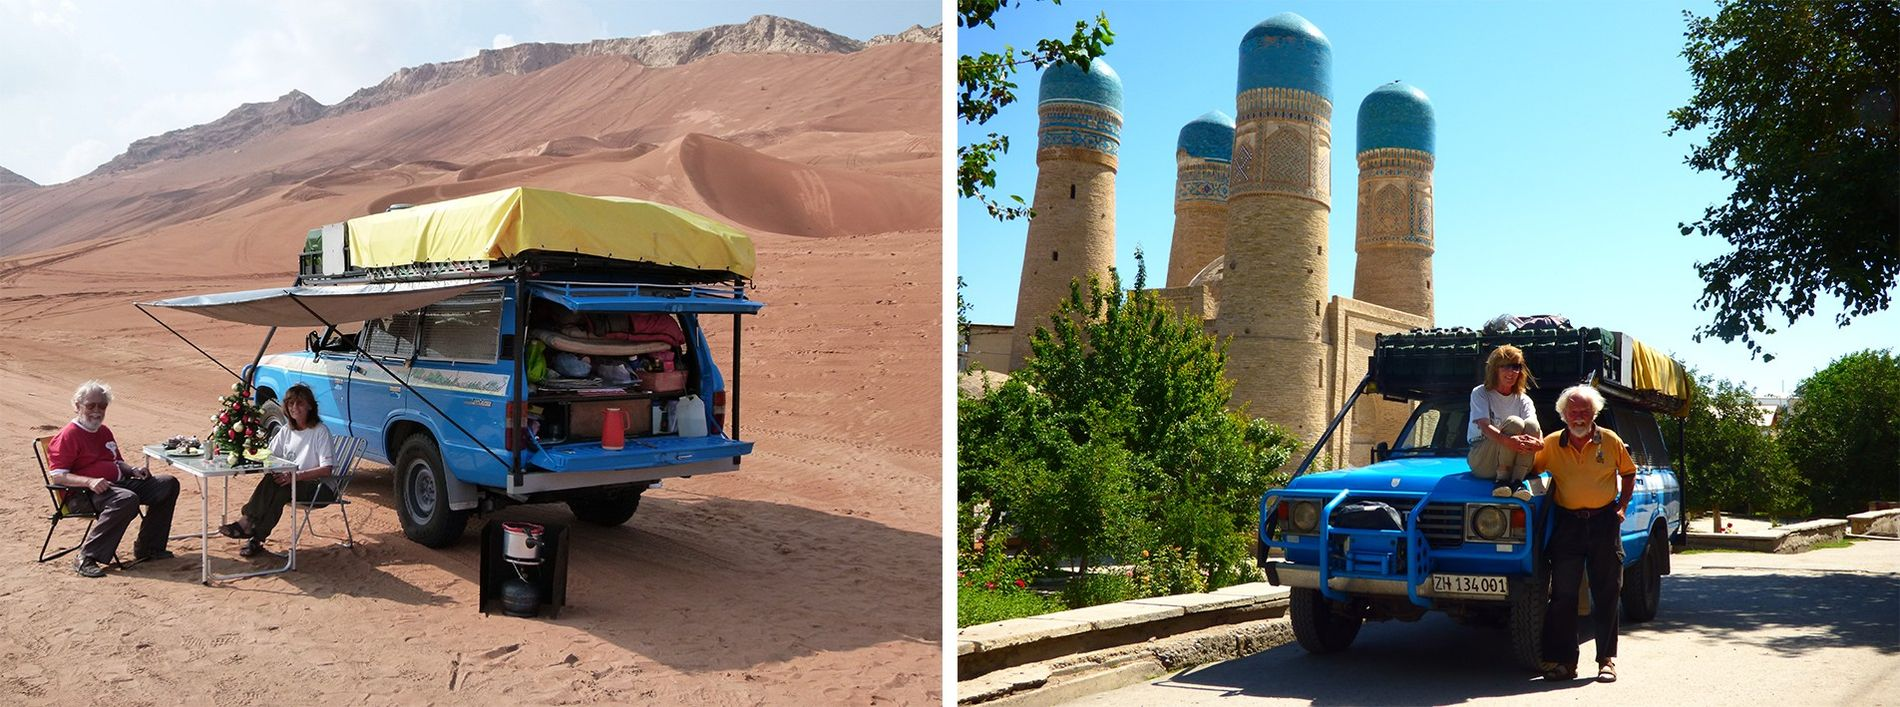 Scenes from the longest driven journey of all: the Schmids in Dubai for Christmas (left) and ...